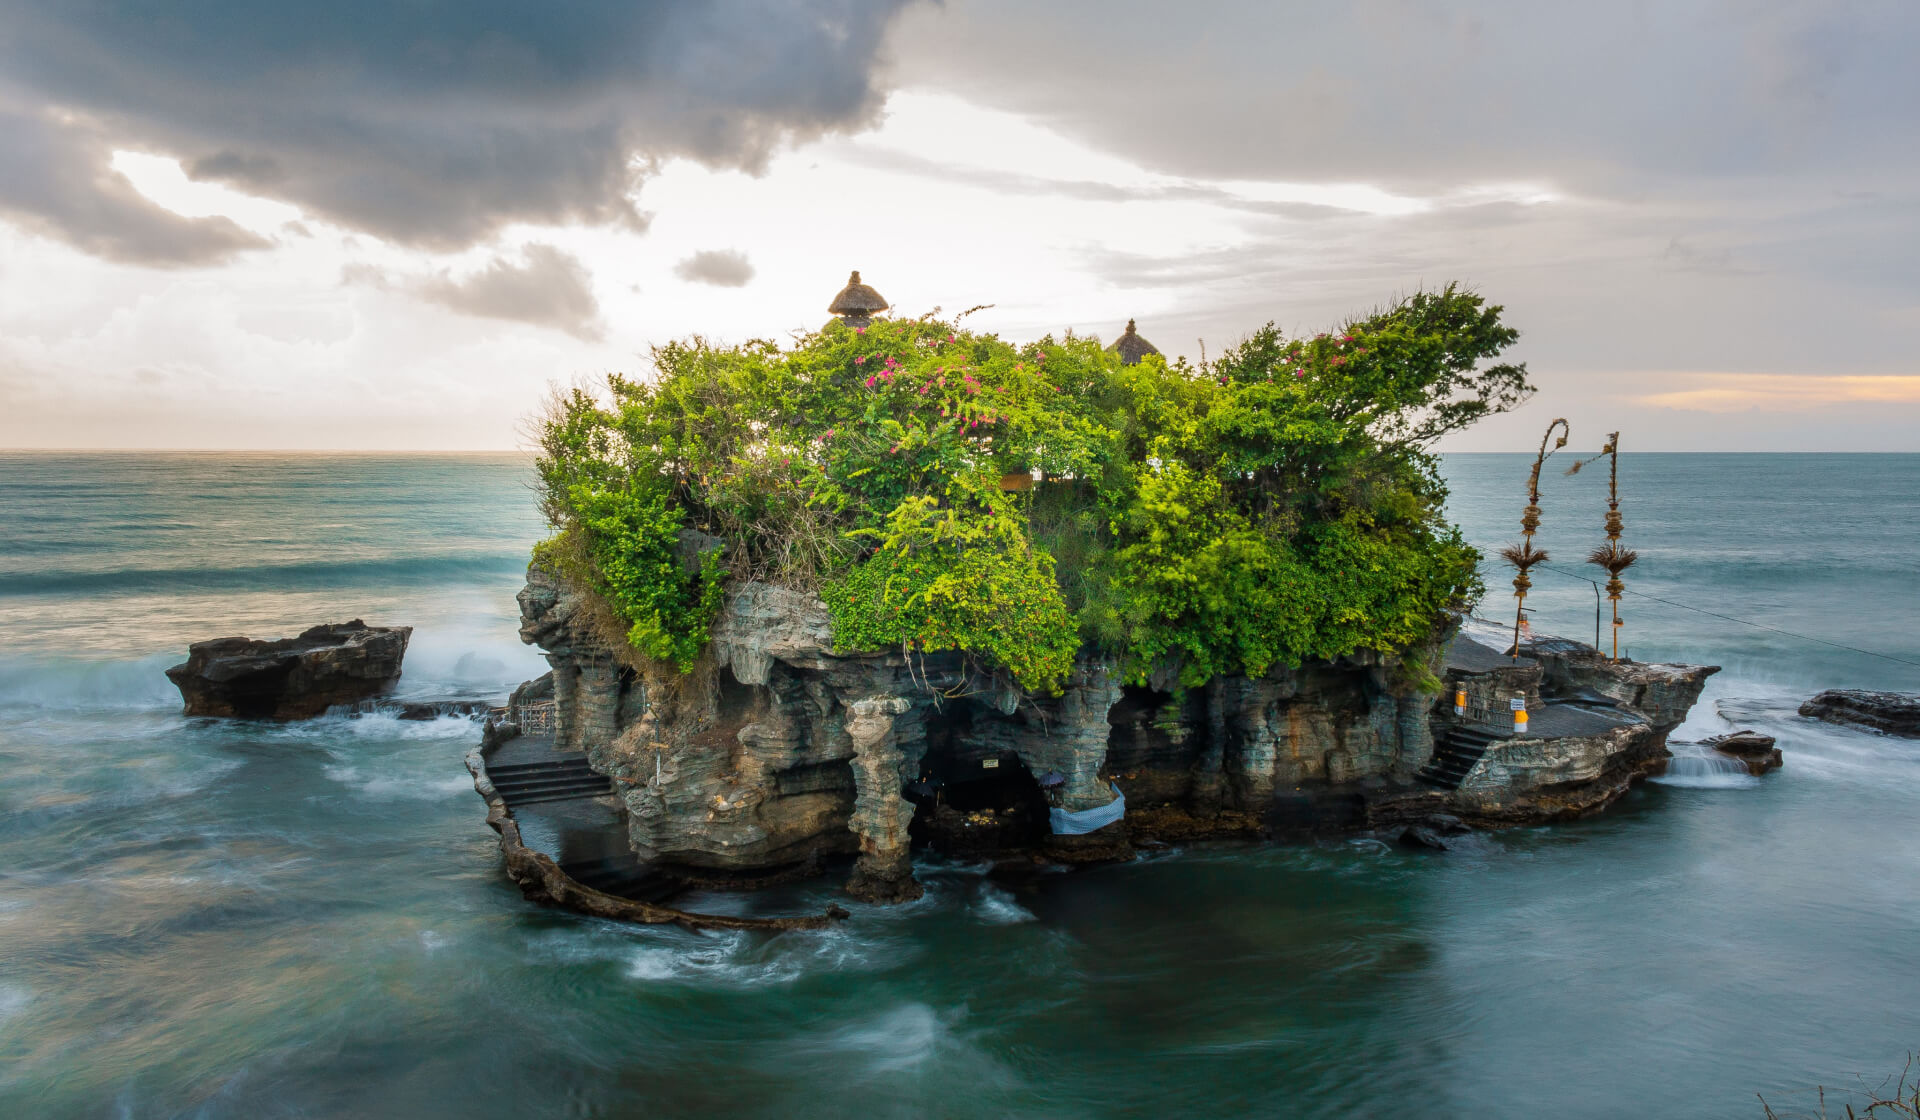 Balinese temple with lush green plants built on a rock formation overlooking the ocean